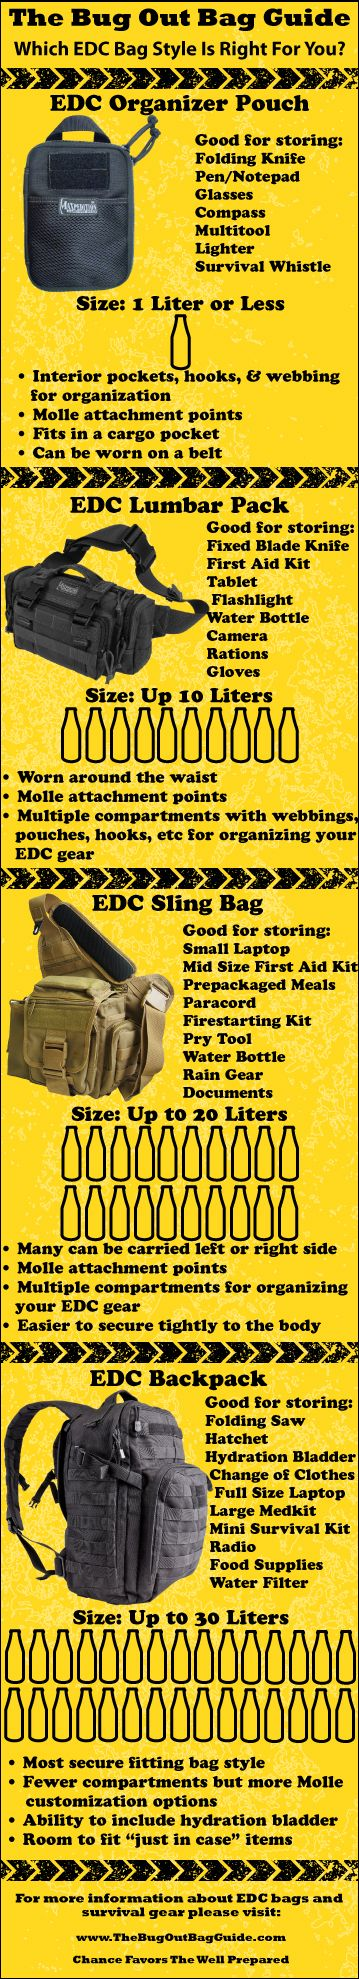 Infographic with tips for choosing the best EDC bag for YOUR every day carry needs.